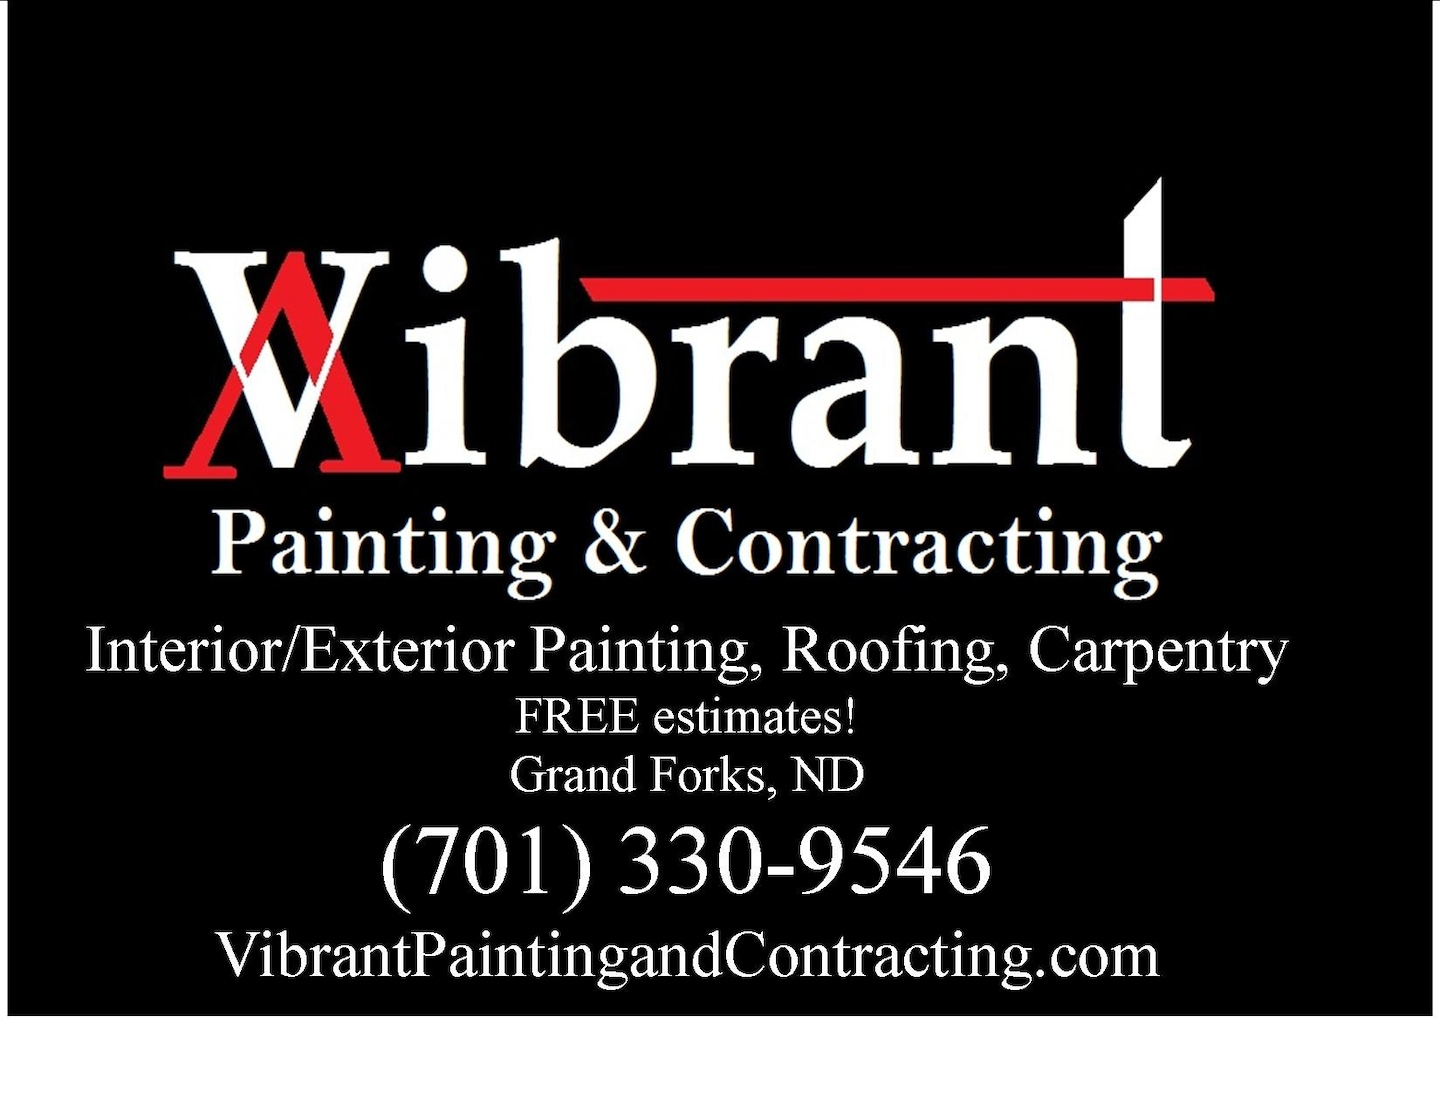 Vibrant Painting & Contracting, LLC